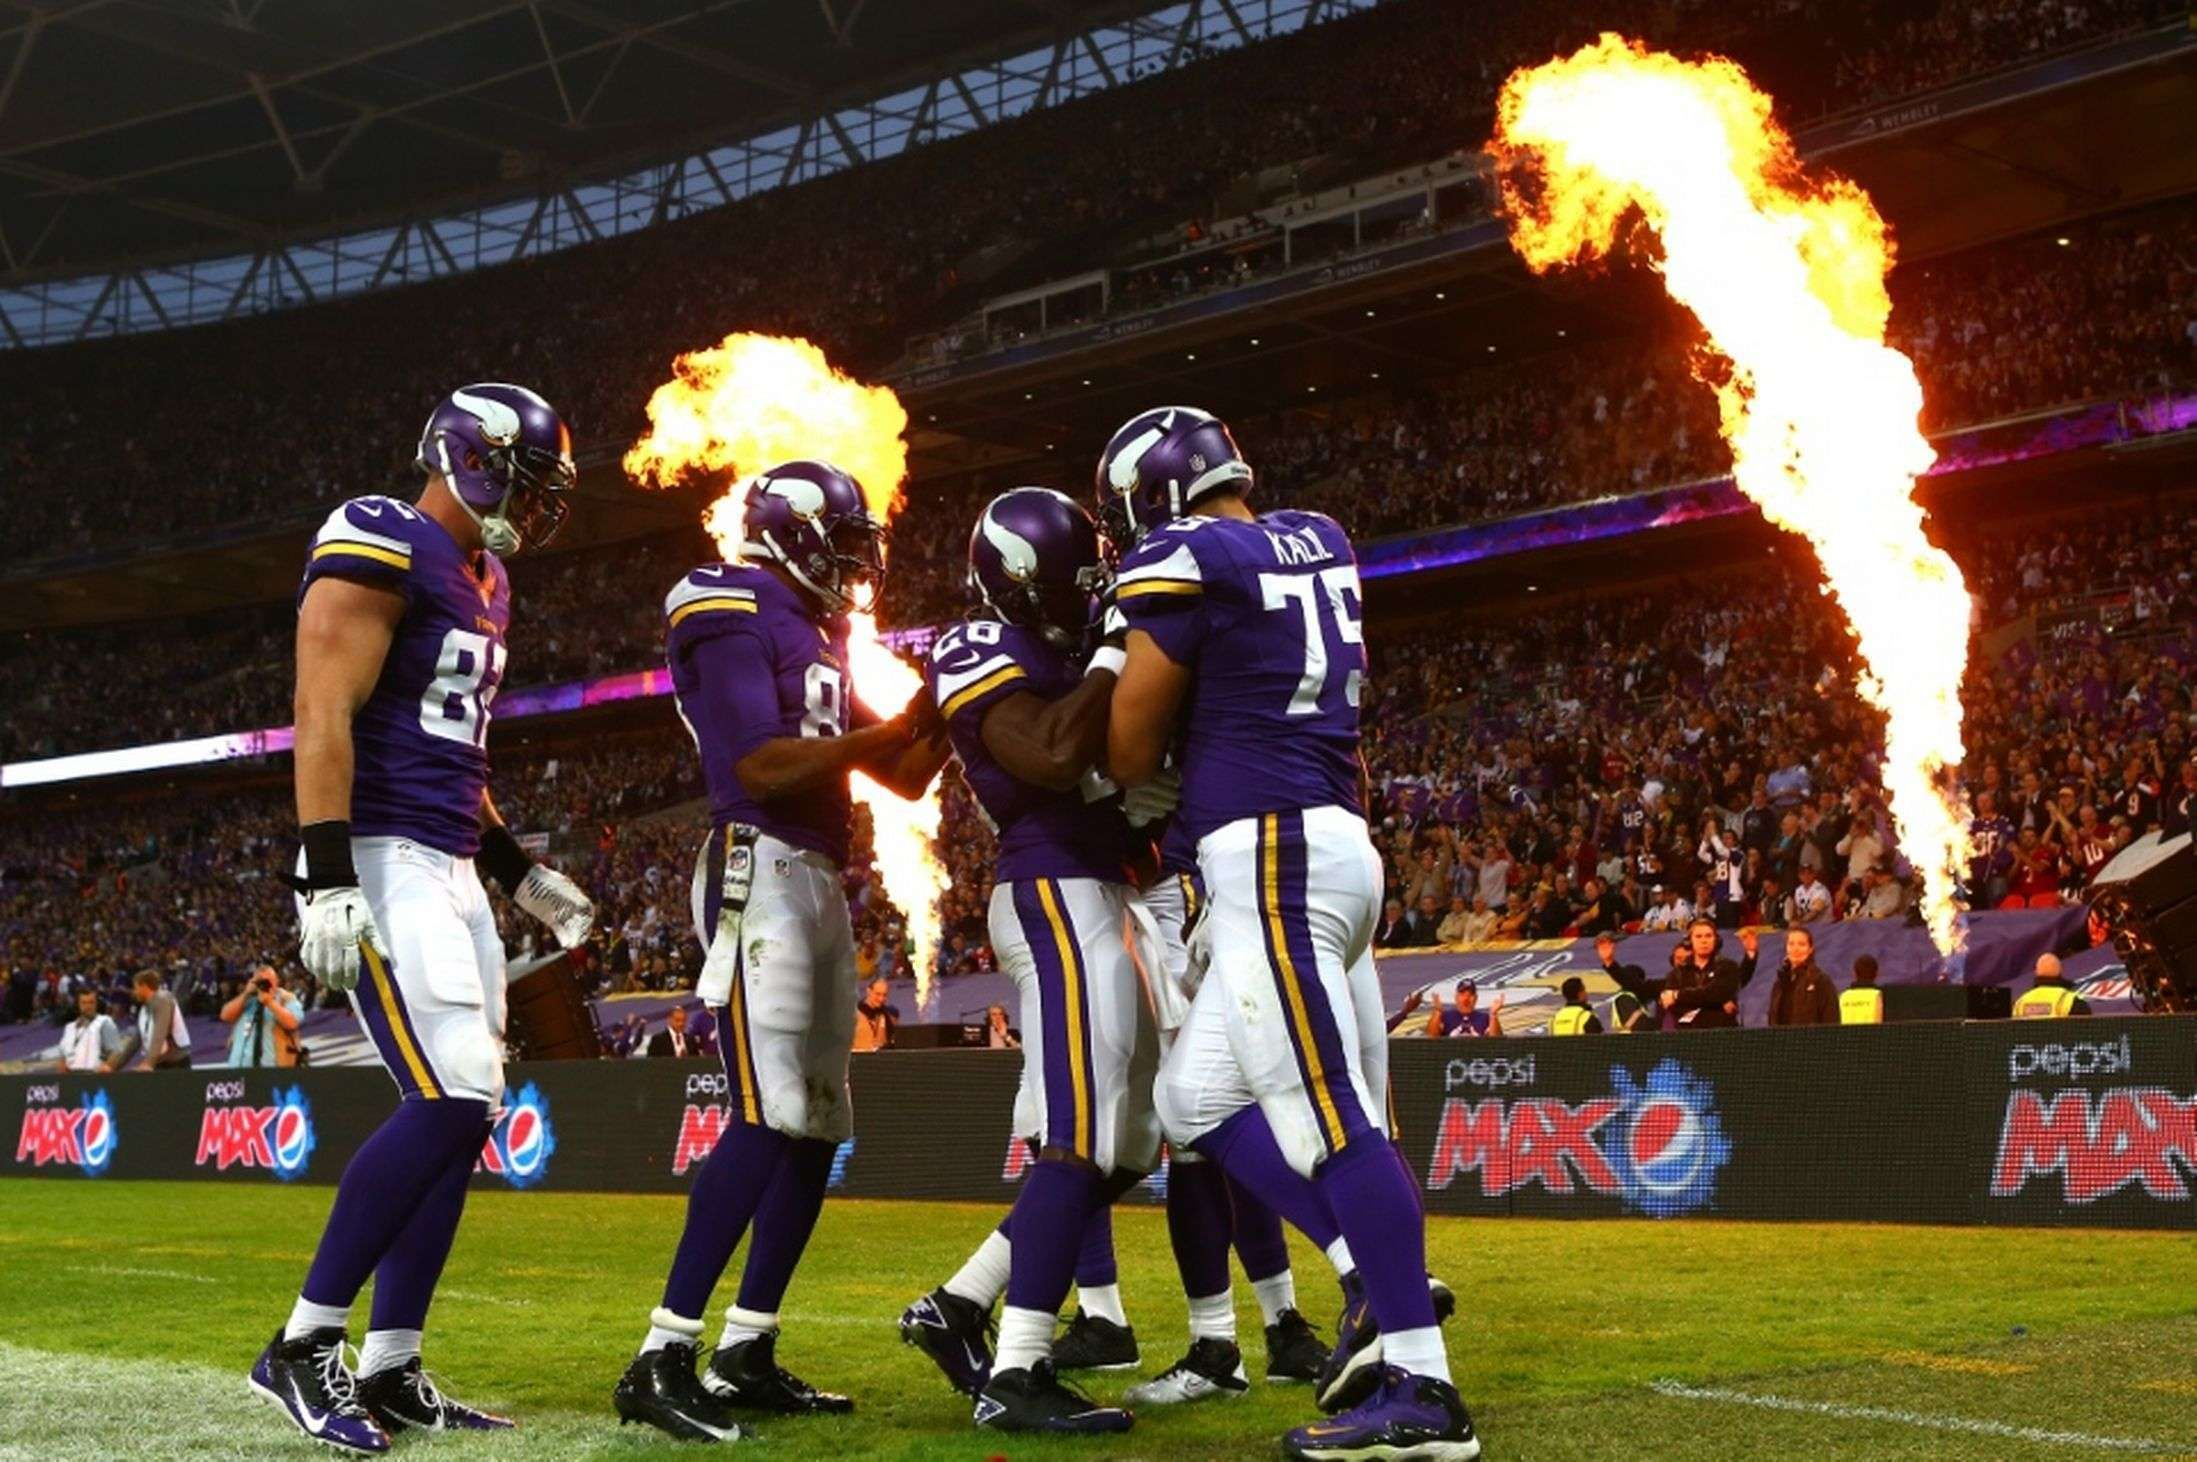 Minnesota Vikings Team Wallpaper NFL Wallpaper HD NFL